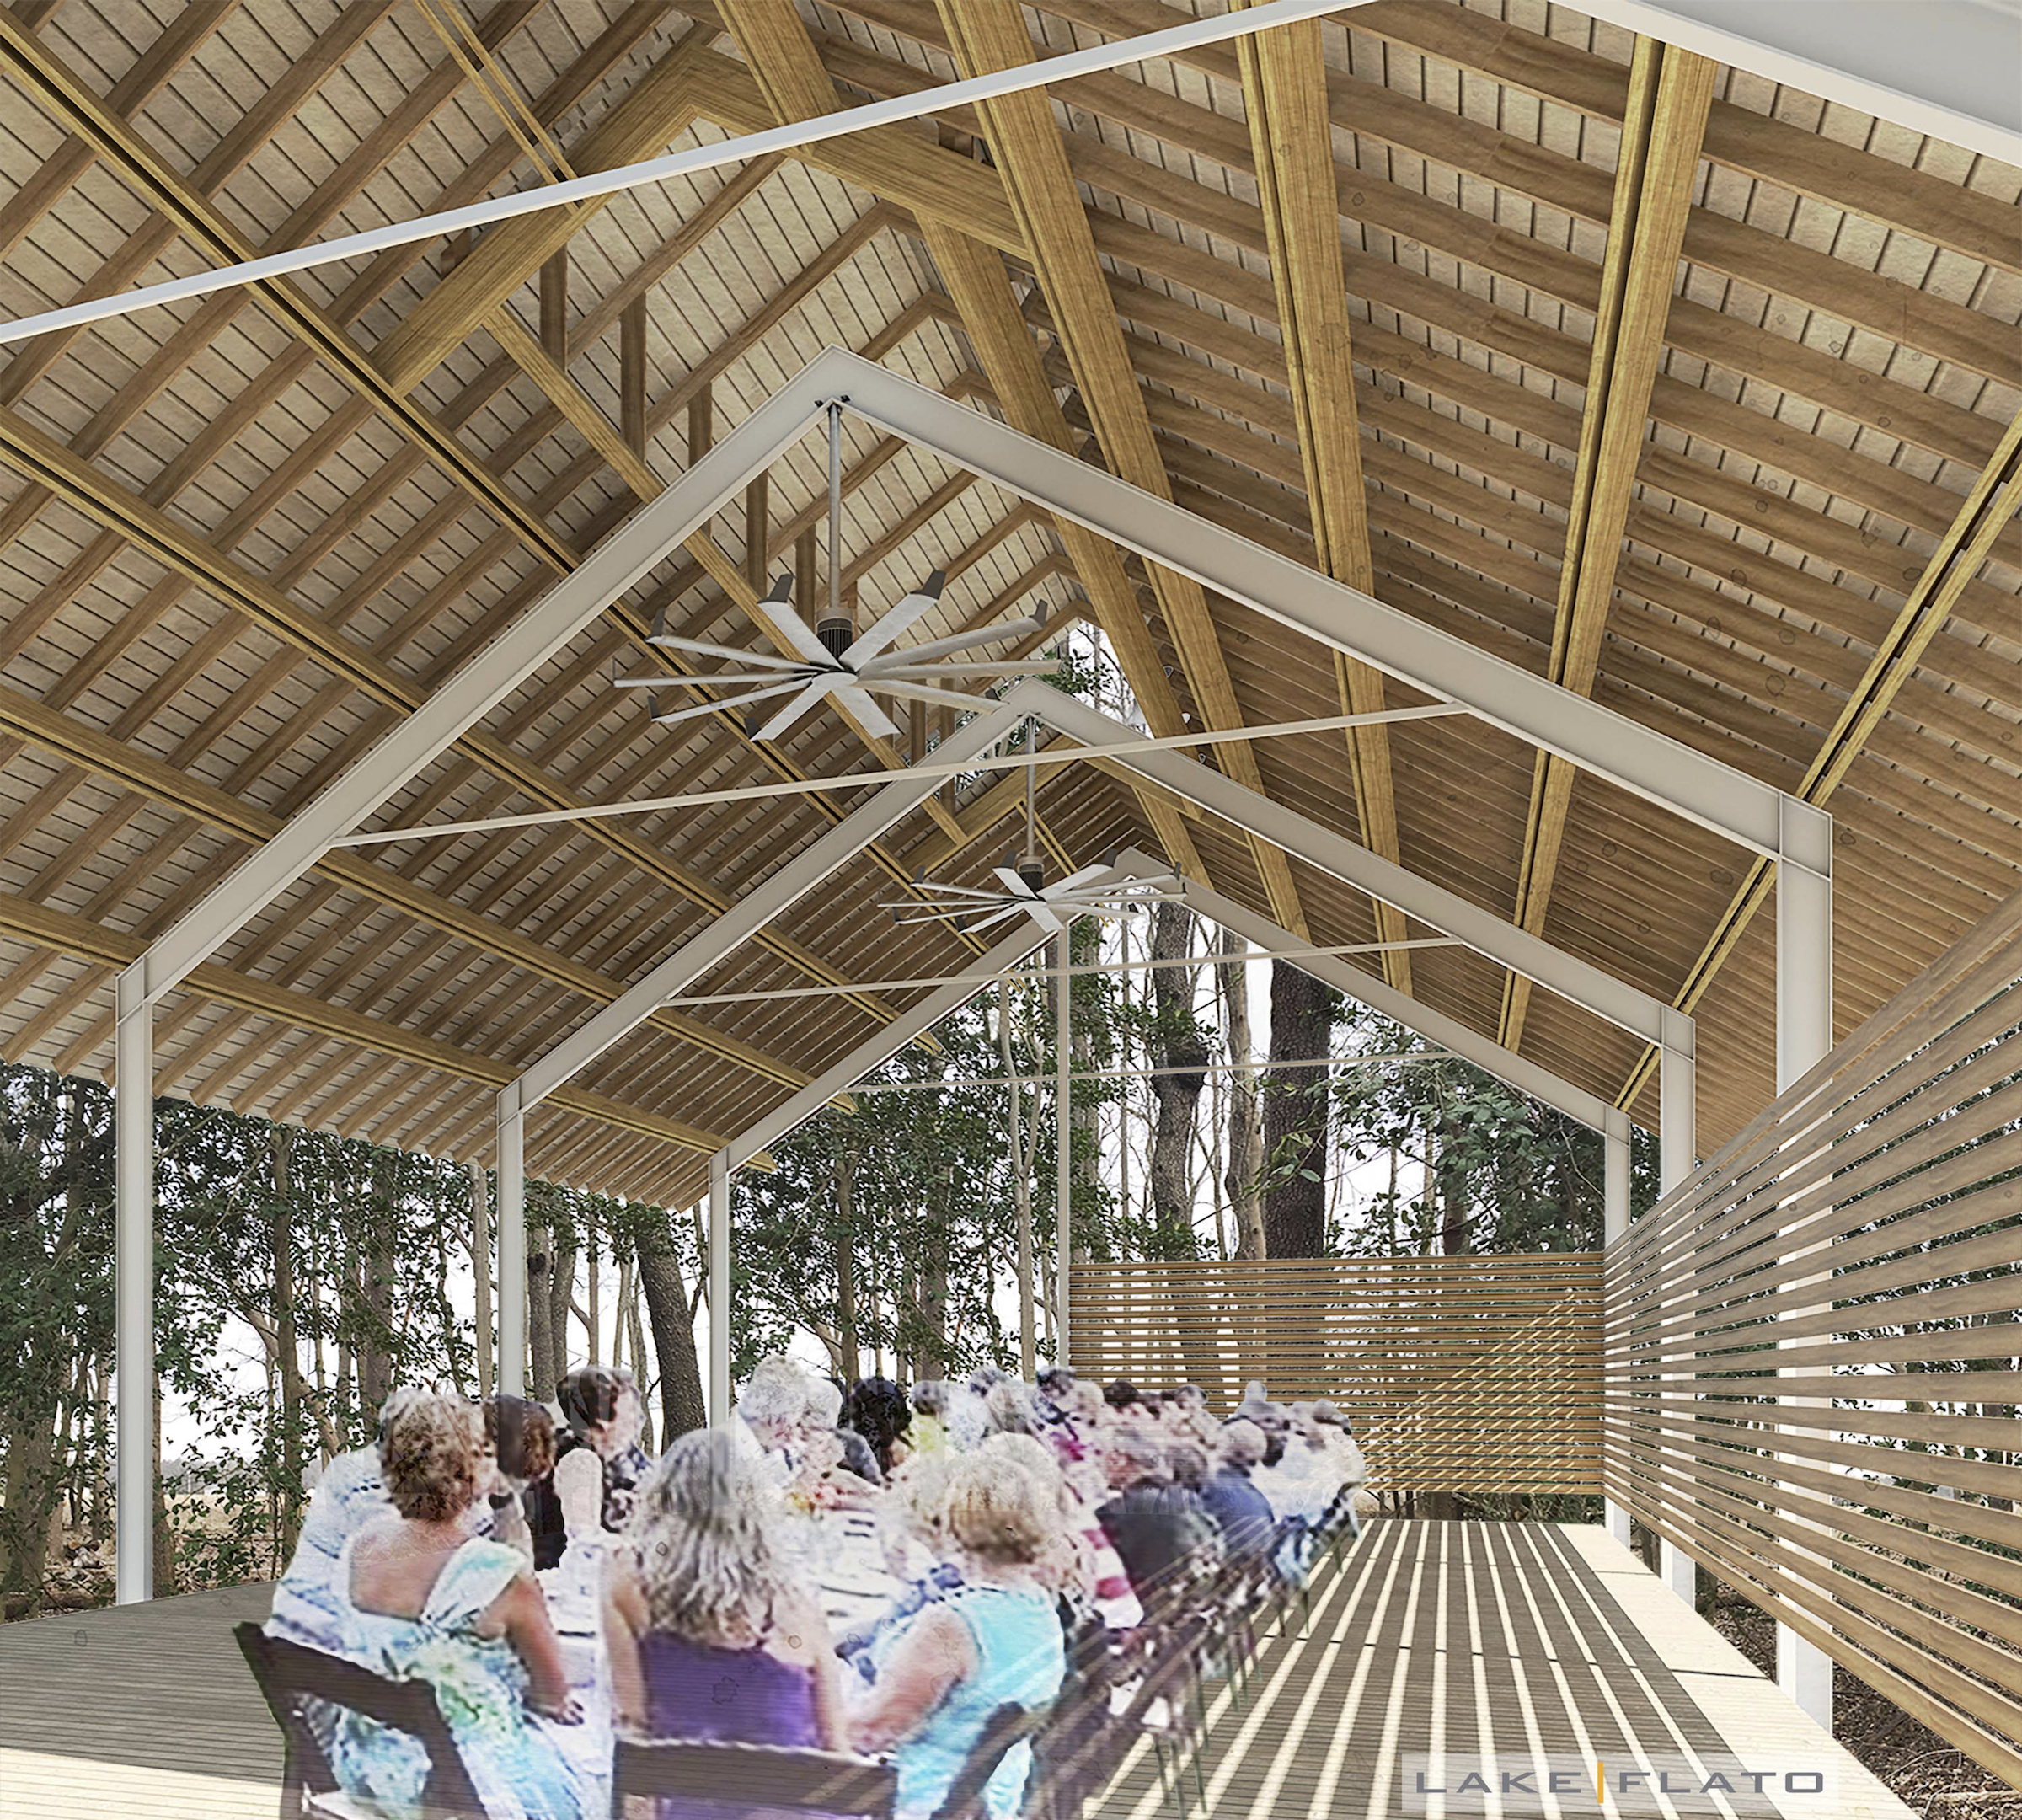 The open-air woodland pavilion, linked to the visitor center all under one roof, projects into part of the garden's 12.5-acre native forest.